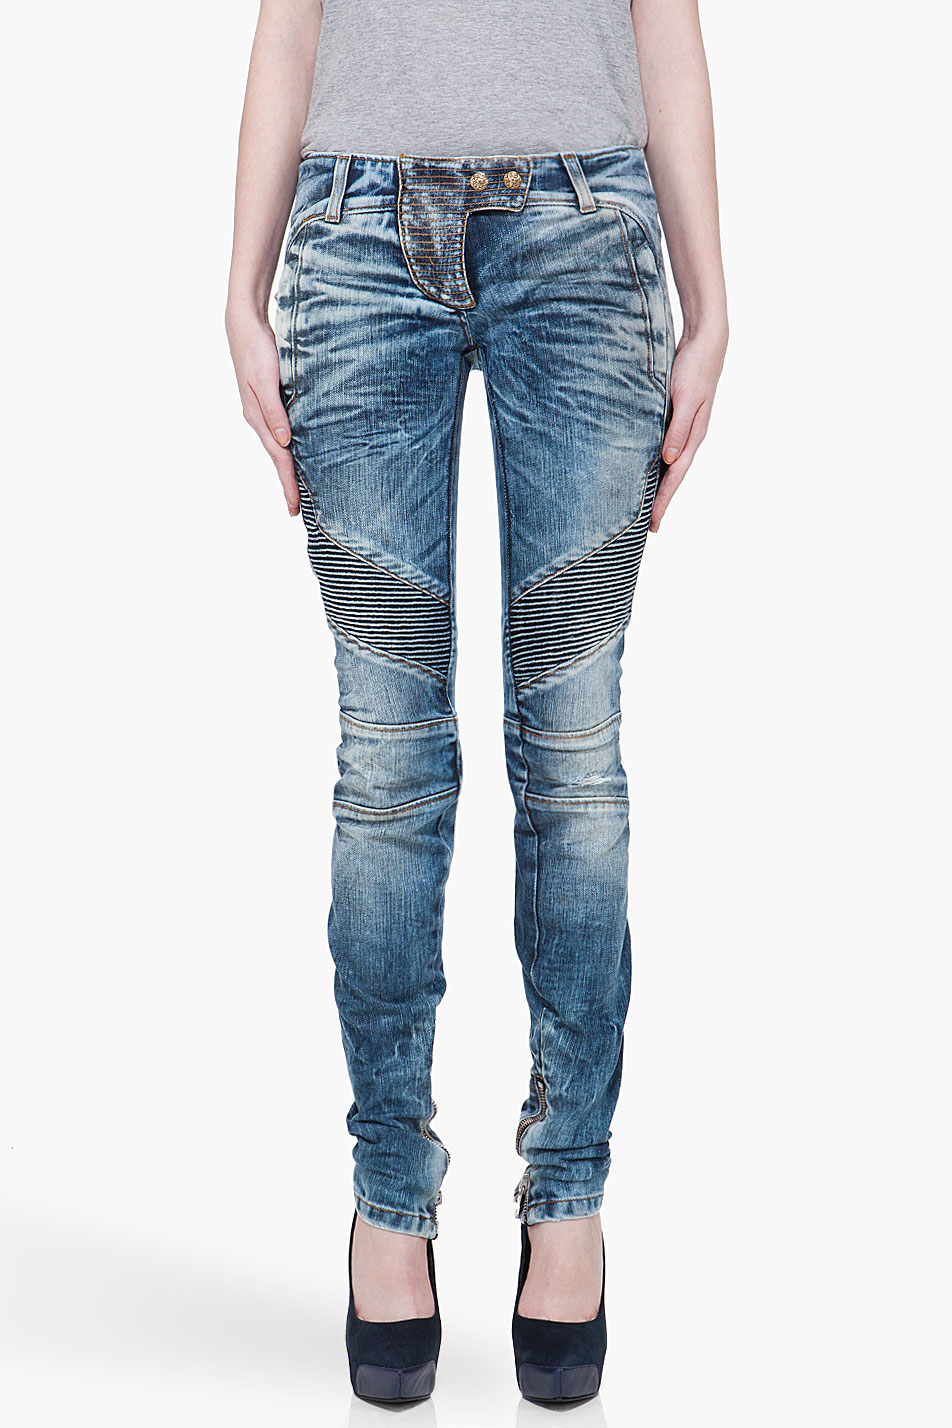 Balmain High-rise Skinny Jeans - Balmain's high-rise skinny jeans are cut from blue stretch-cotton denim. Sits above waist. Sits above waist. Slim through hips and thighs.